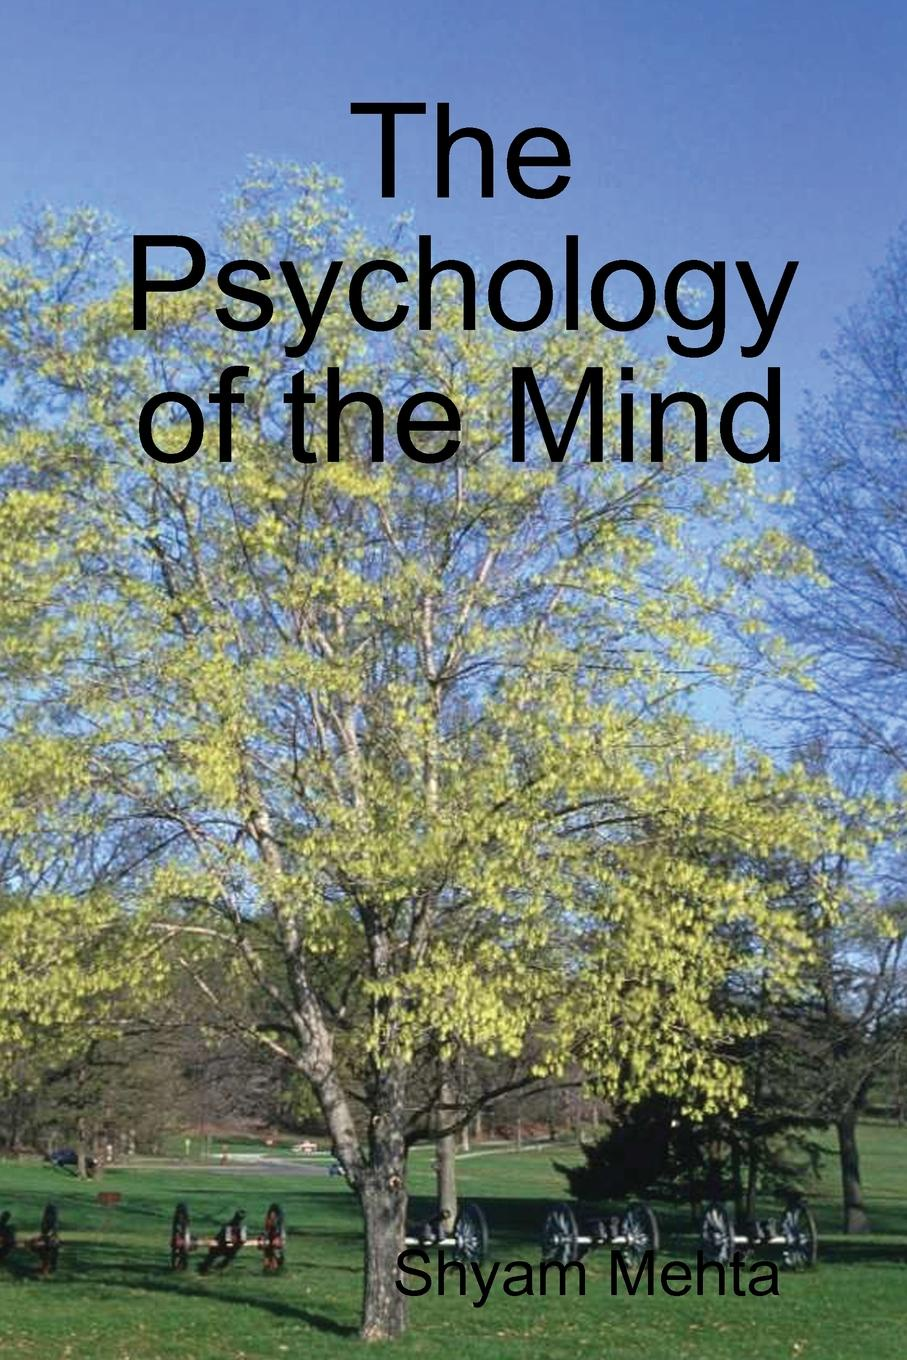 Shyam Mehta The Psychology of the Mind free shipping kayipht cm400ha1 24h can directly buy or contact the seller